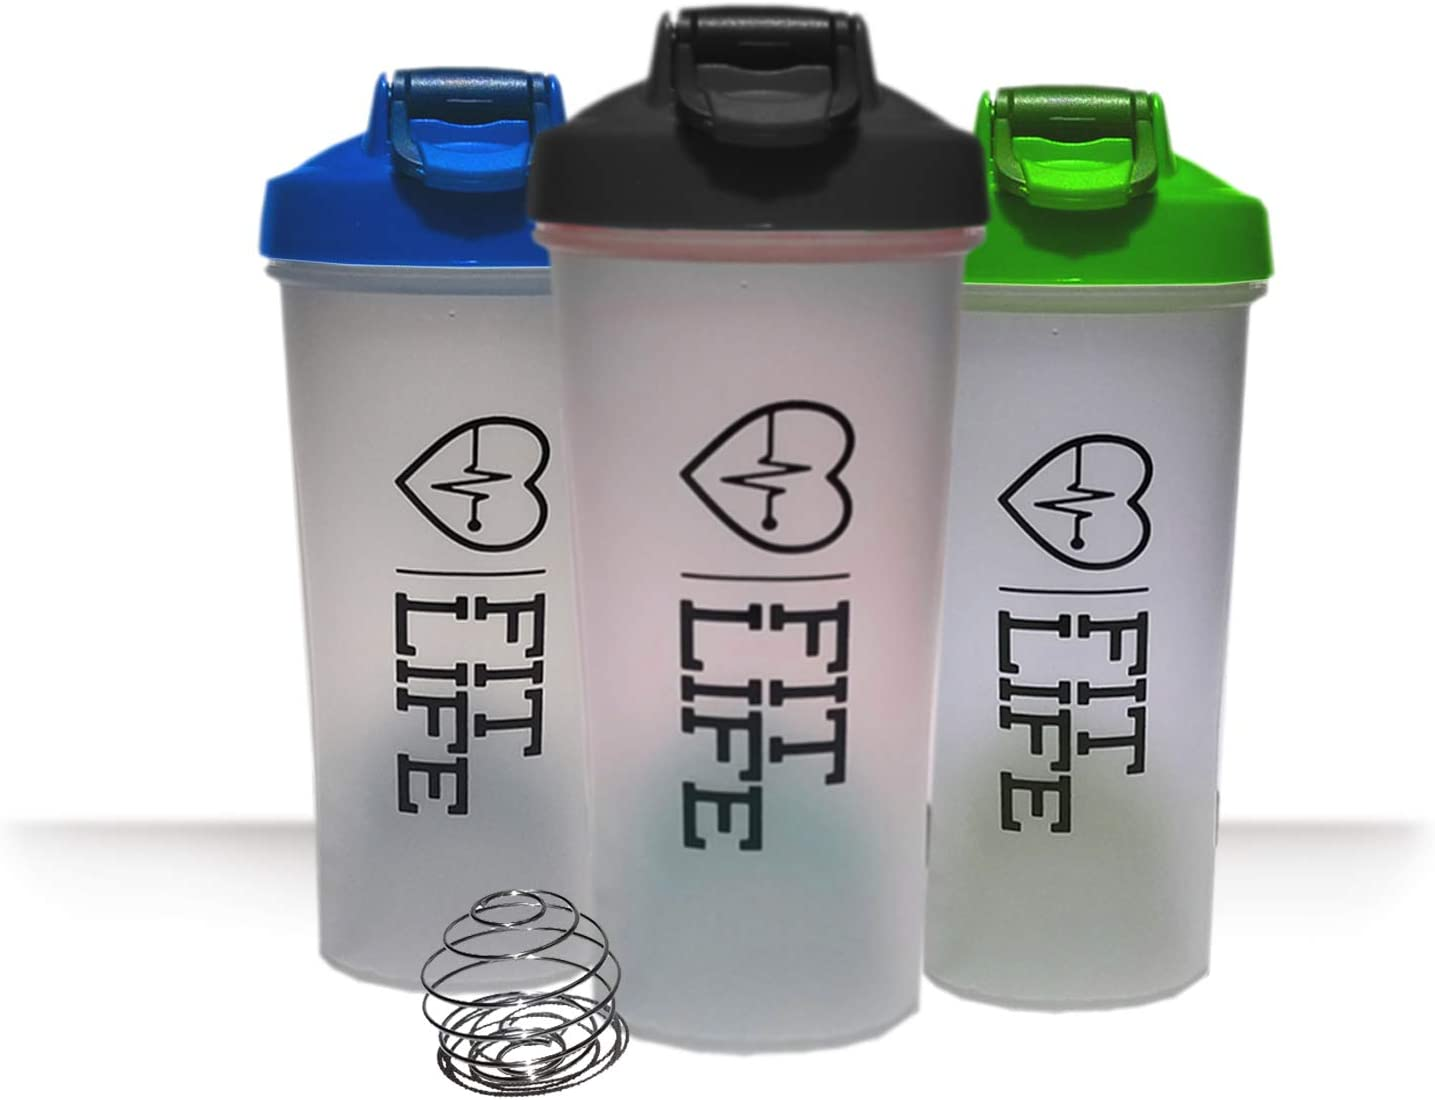 Shaker bottles for protein mixes, 20 Ounce Classic Protein Blender Bottle, Water Bottle, Dishwasher Safe, Leak Proof, Perfect Gym Fitness Gift, Fits most cup holders, BLACK